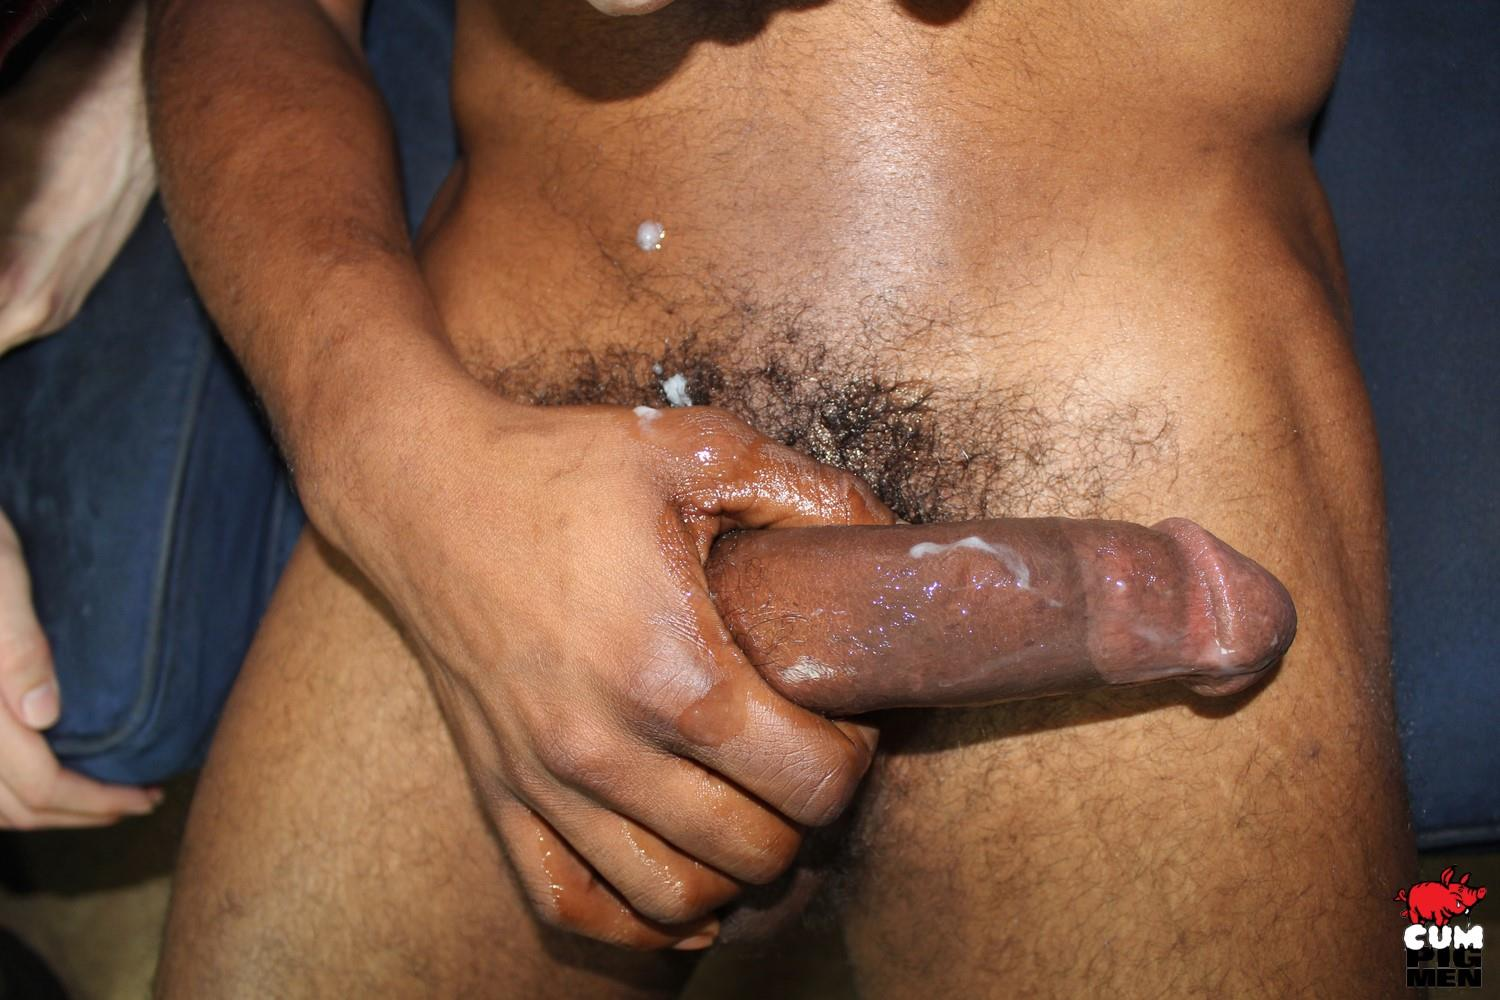 Cum Pig Men Rio Starr Big Black Cock Cum Eating 16 Slutty White Boy Eats A Black Mans Big Load Of Cum